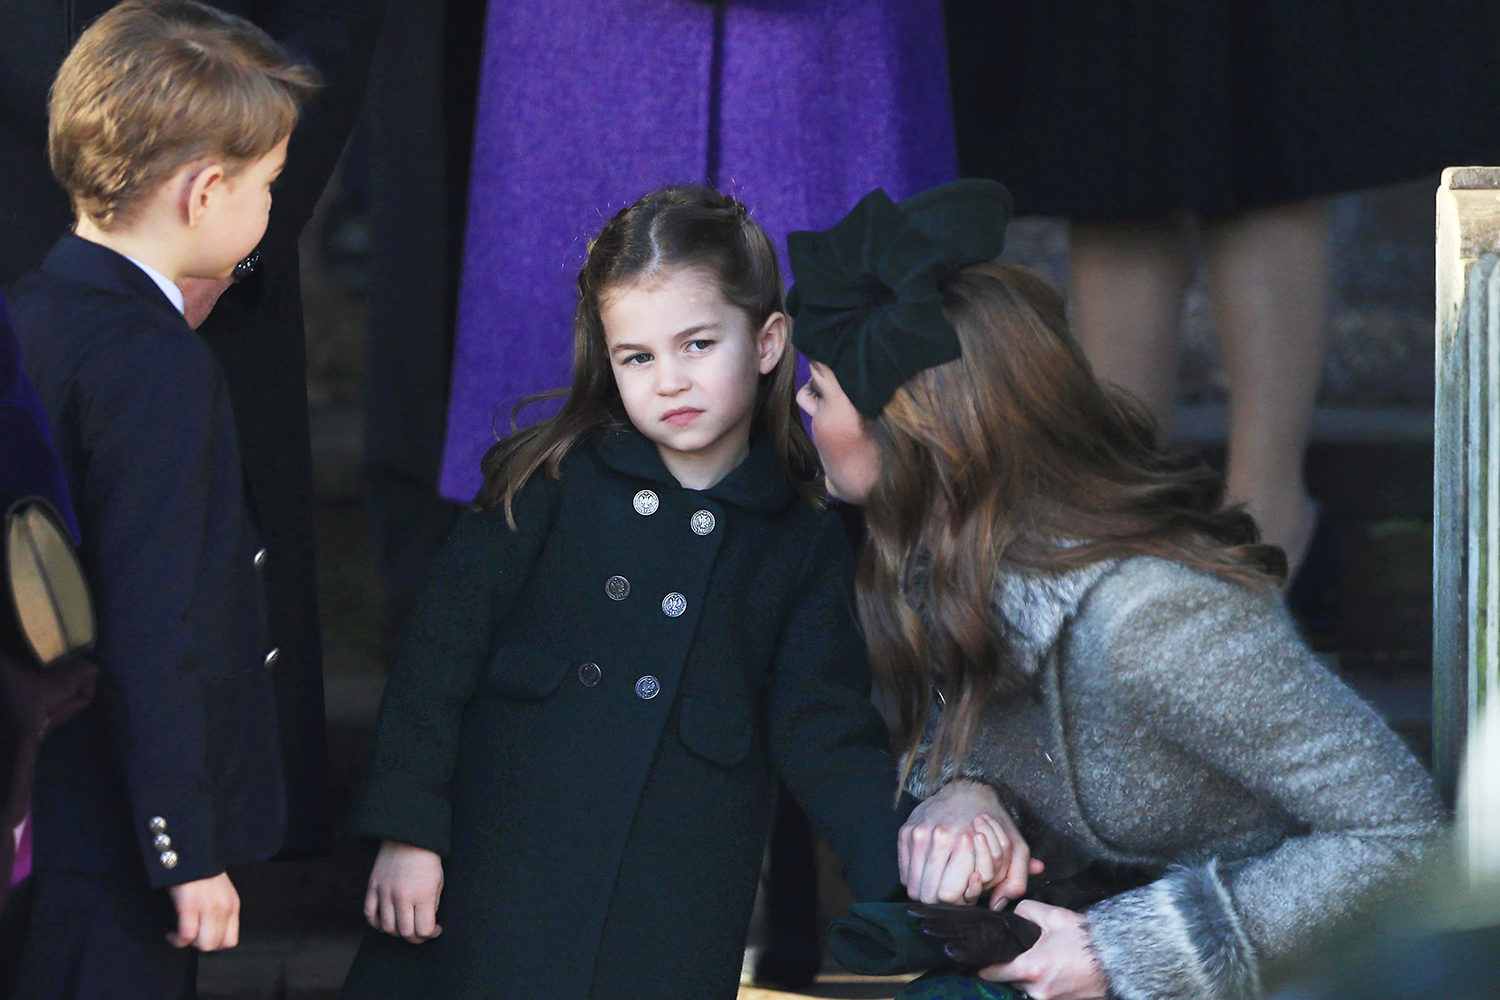 KING'S LYNN, ENGLAND - DECEMBER 25: Catherine, Duchess of Cambridge speaks to Princess Charlotte as Prince George watches as they leave after attending the Christmas Day Church service at Church of St Mary Magdalene on the Sandringham estate on December 25, 2019 in King's Lynn, United Kingdom. (Photo by Stephen Pond/Getty Images)